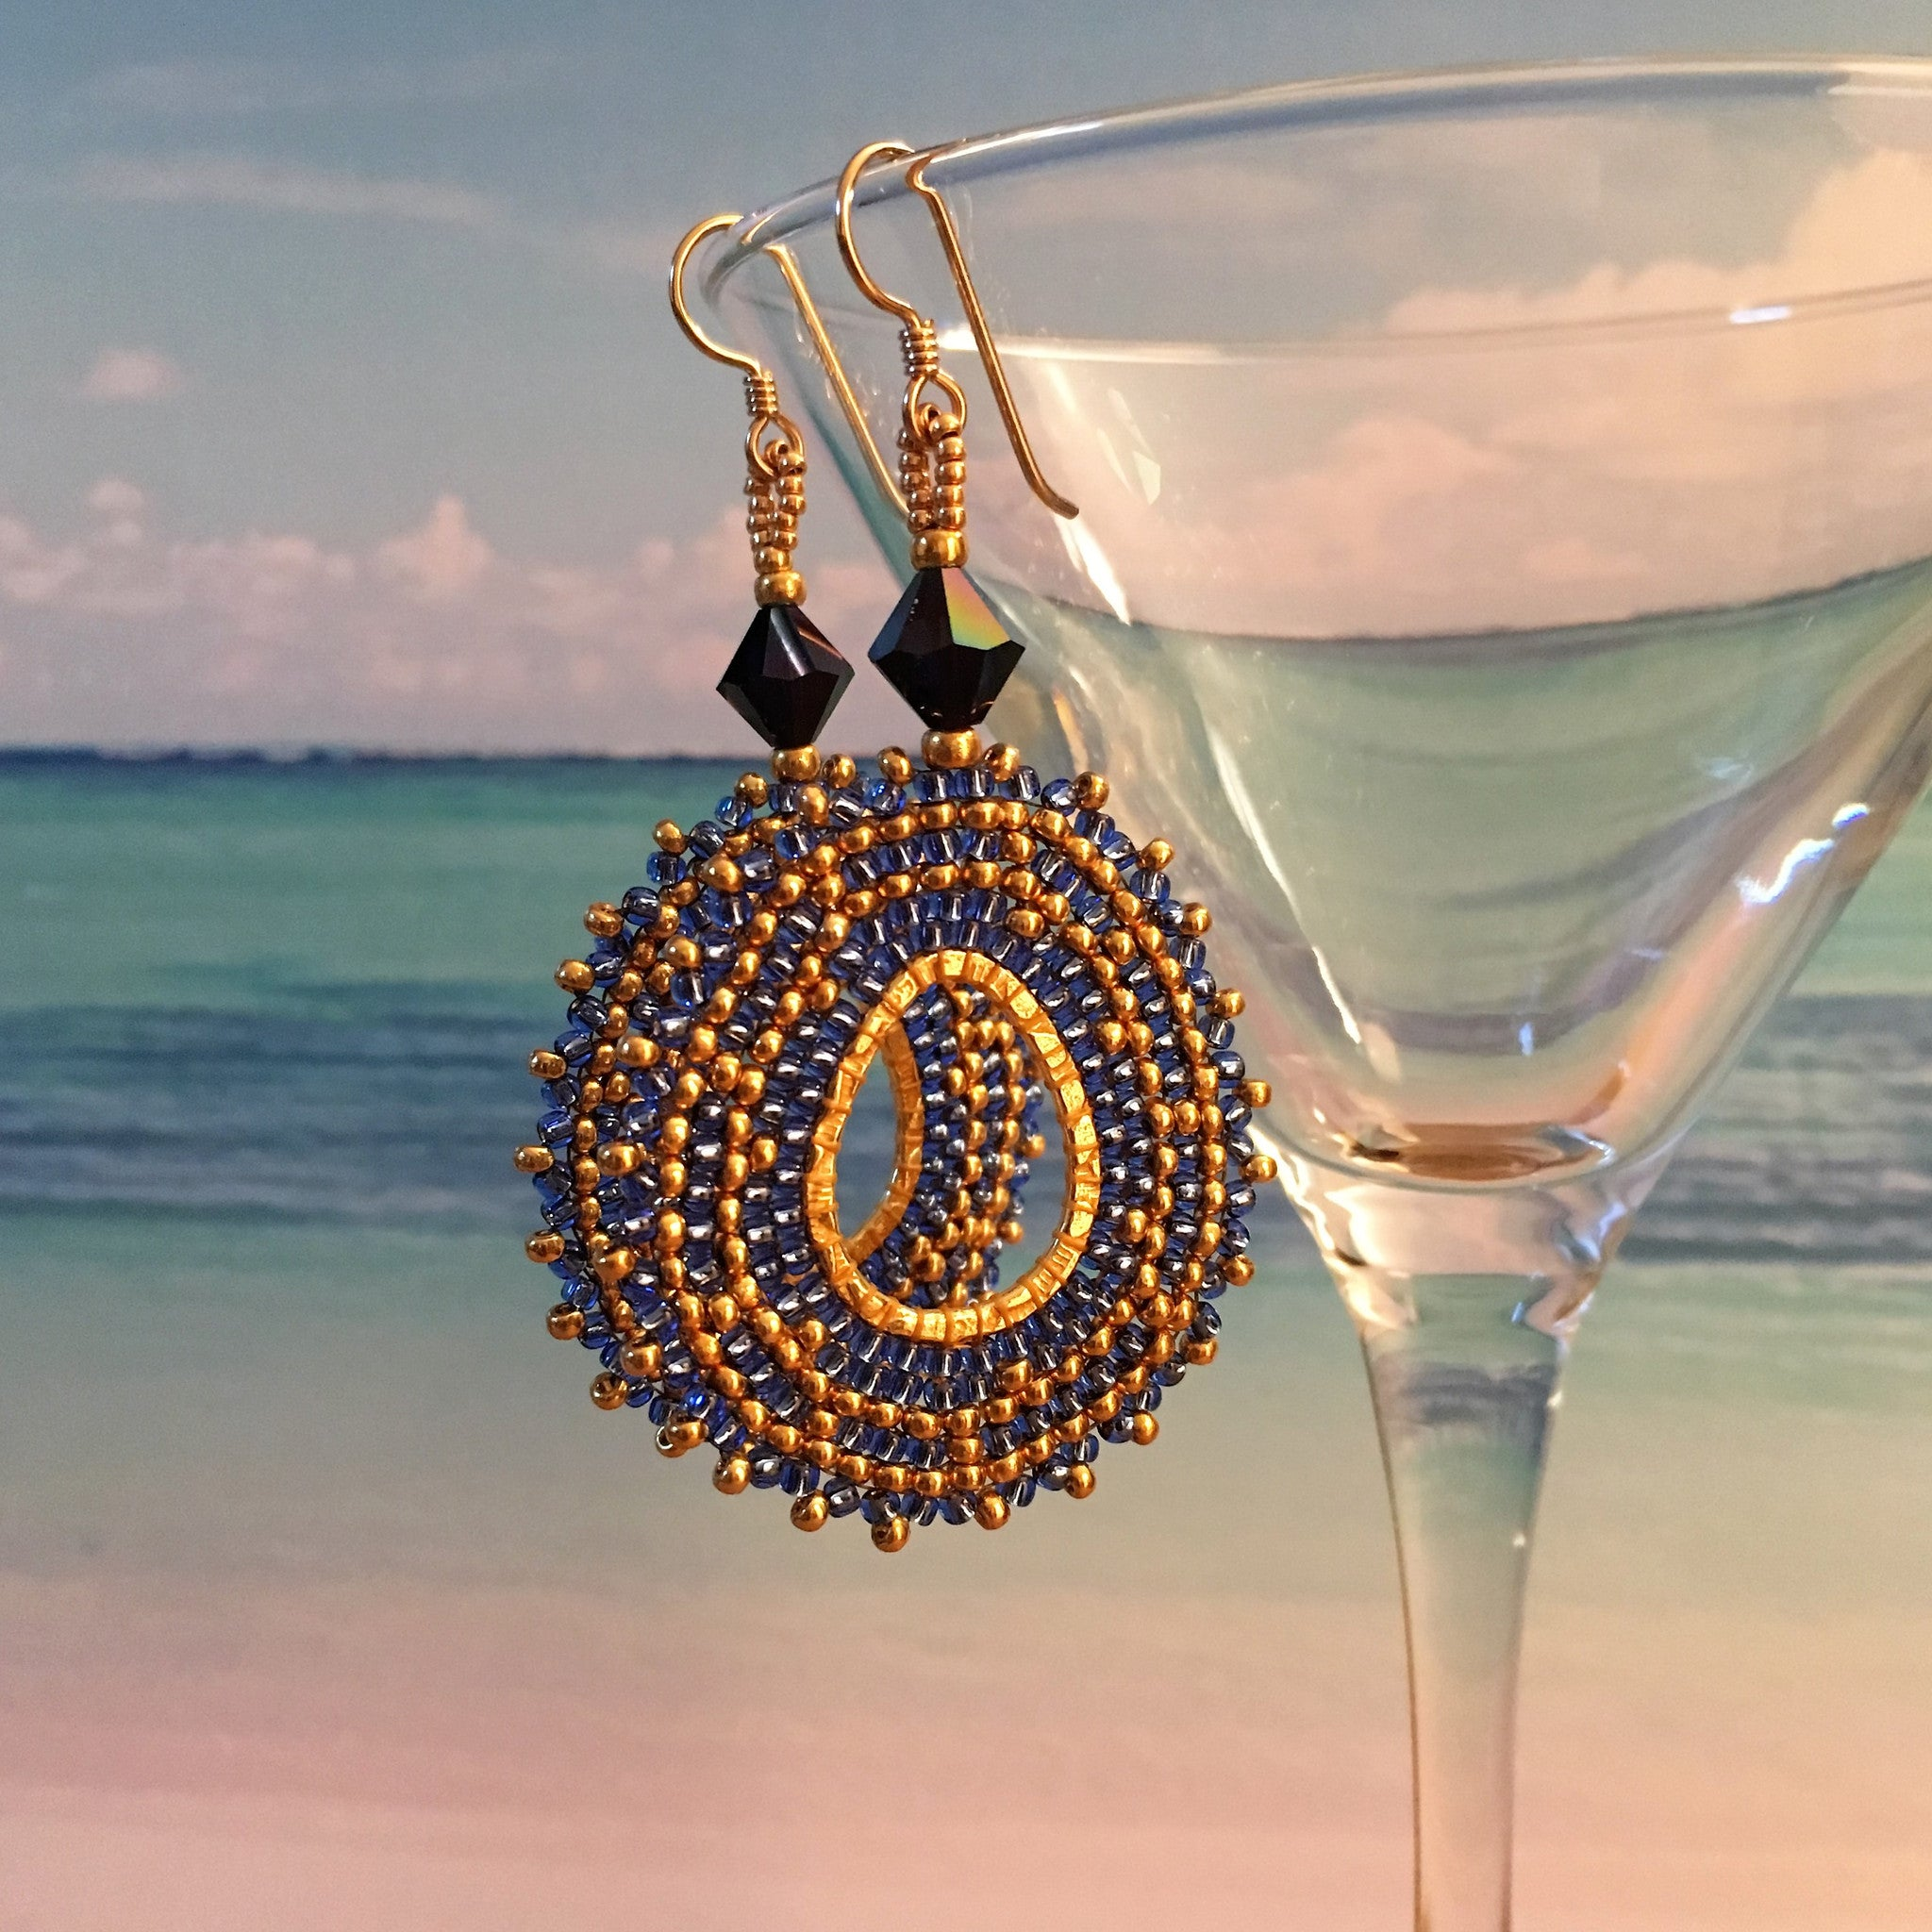 Handmade beaded oval earrings blue gold Swarovski crystal 14K gold filled long lightweight elegant bridal party Beaded by the Beach